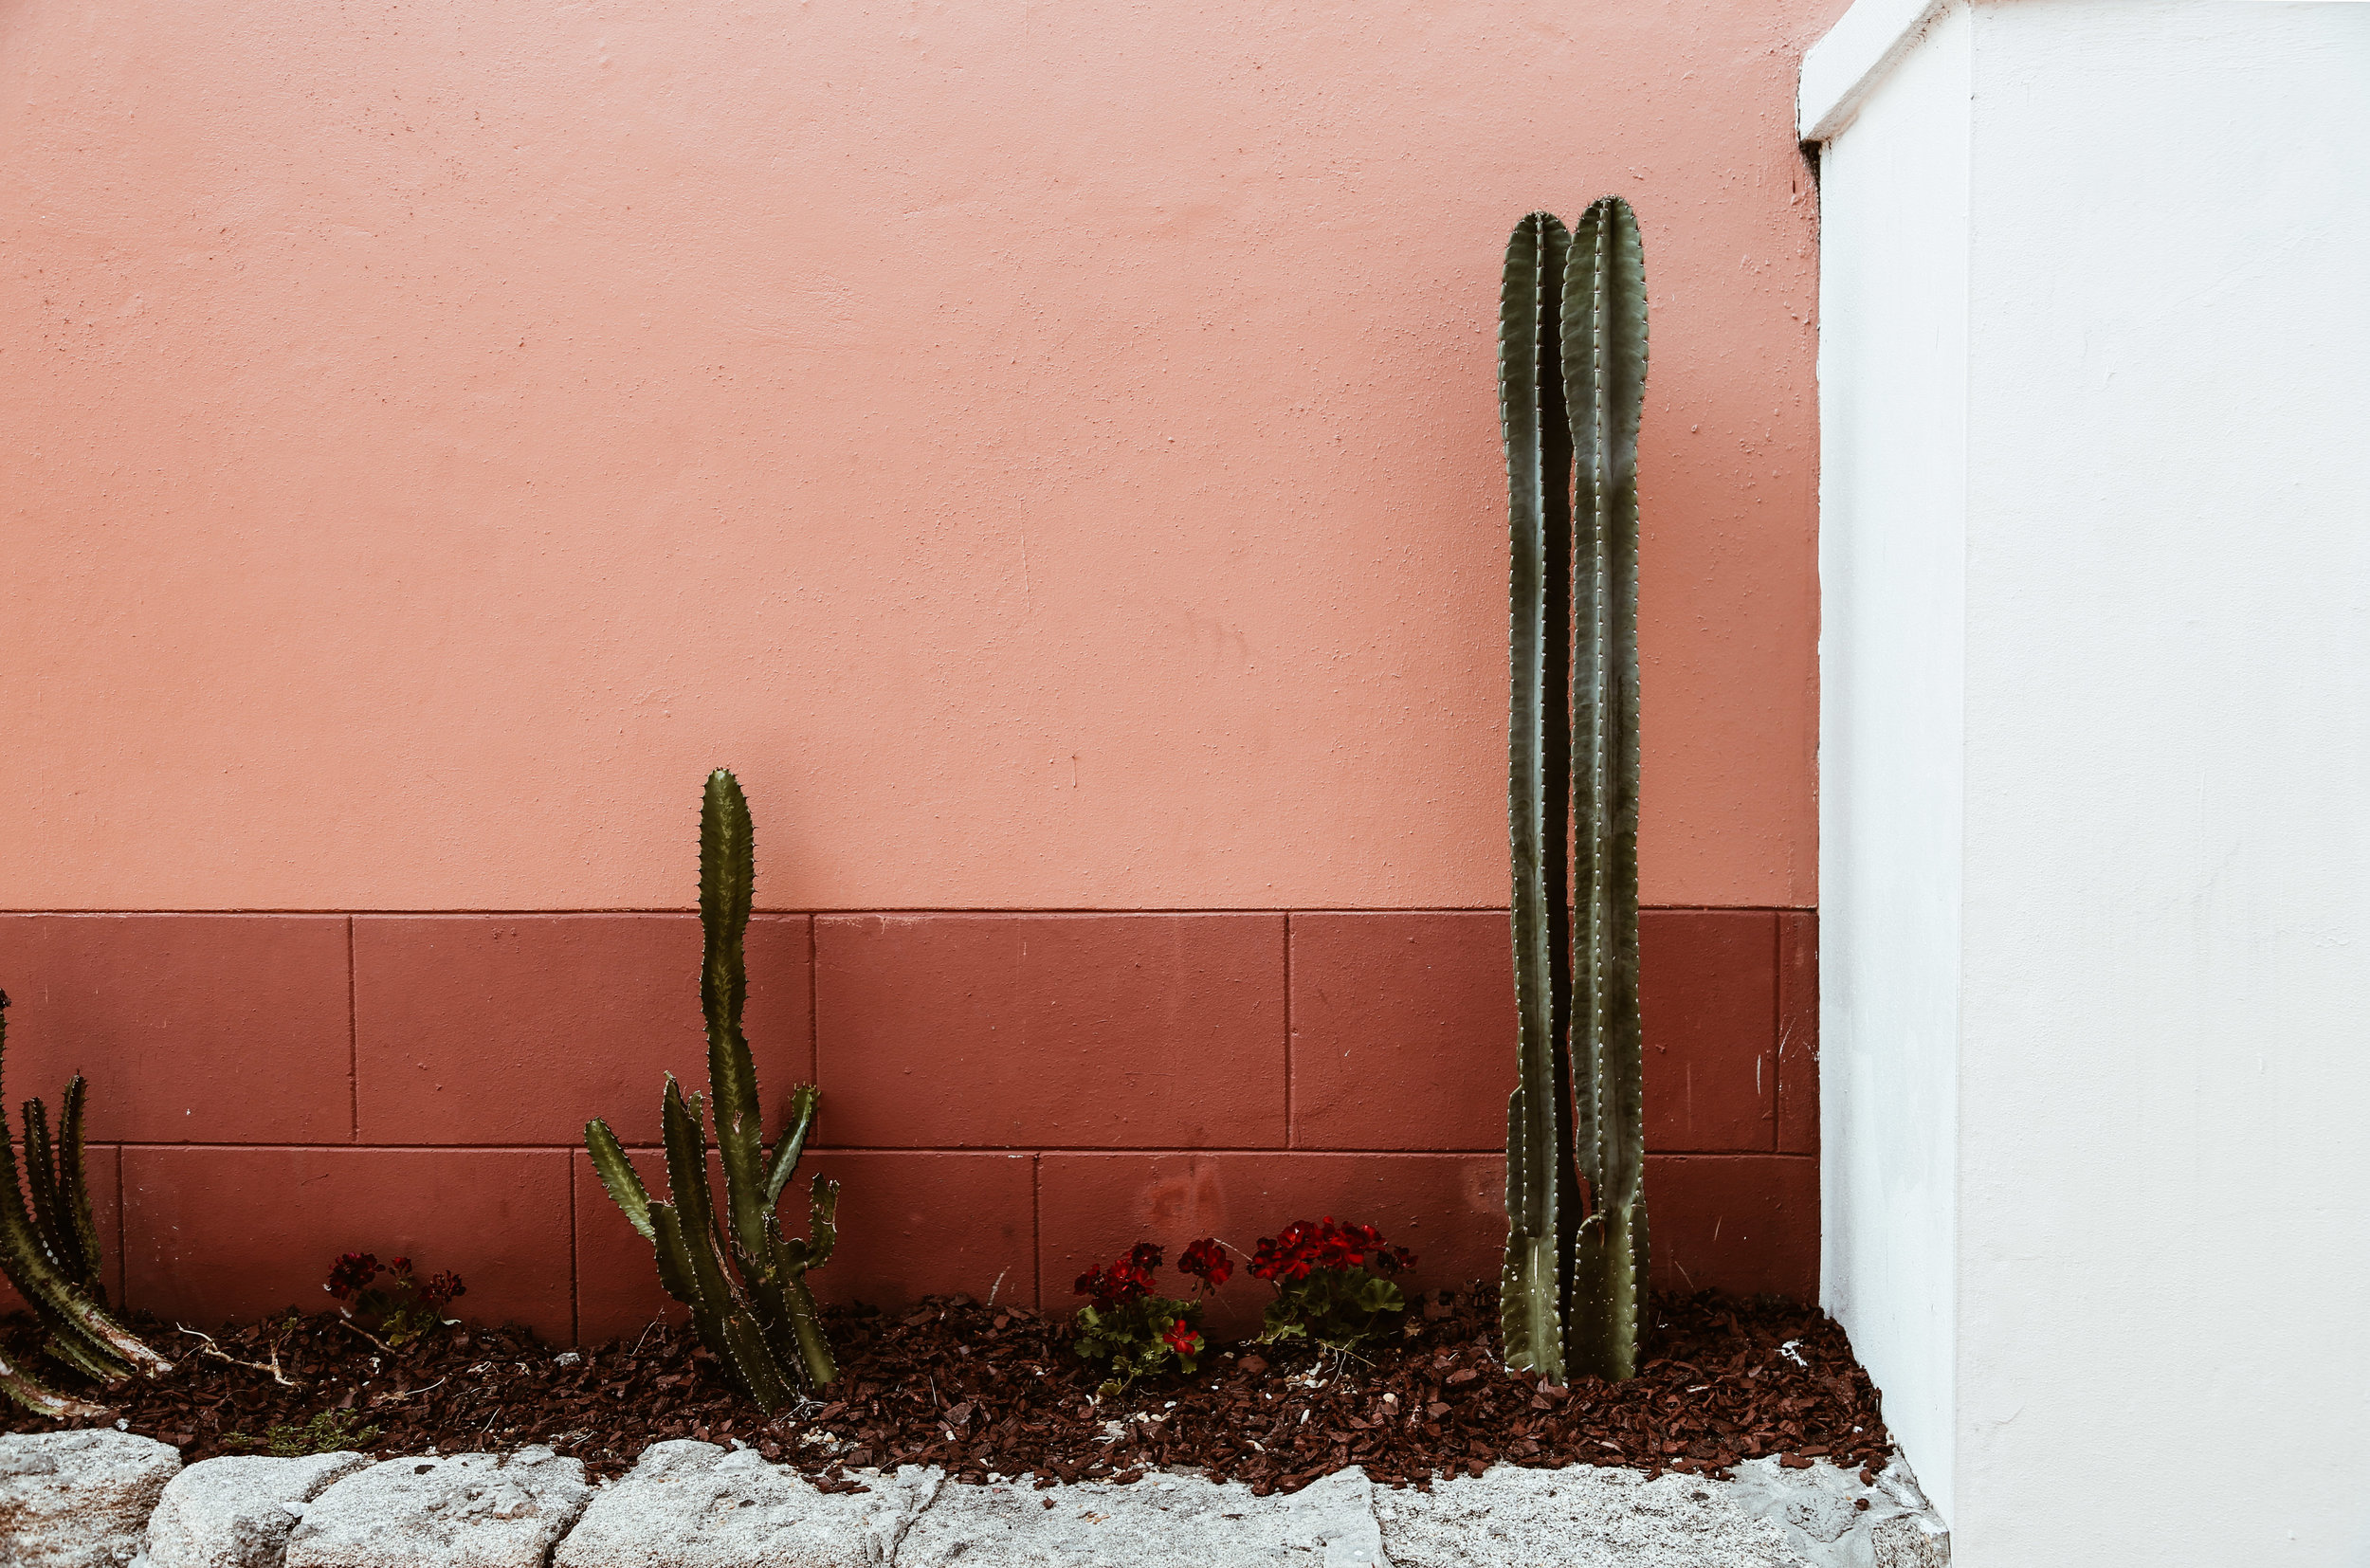 cactus and pink wall.jpg